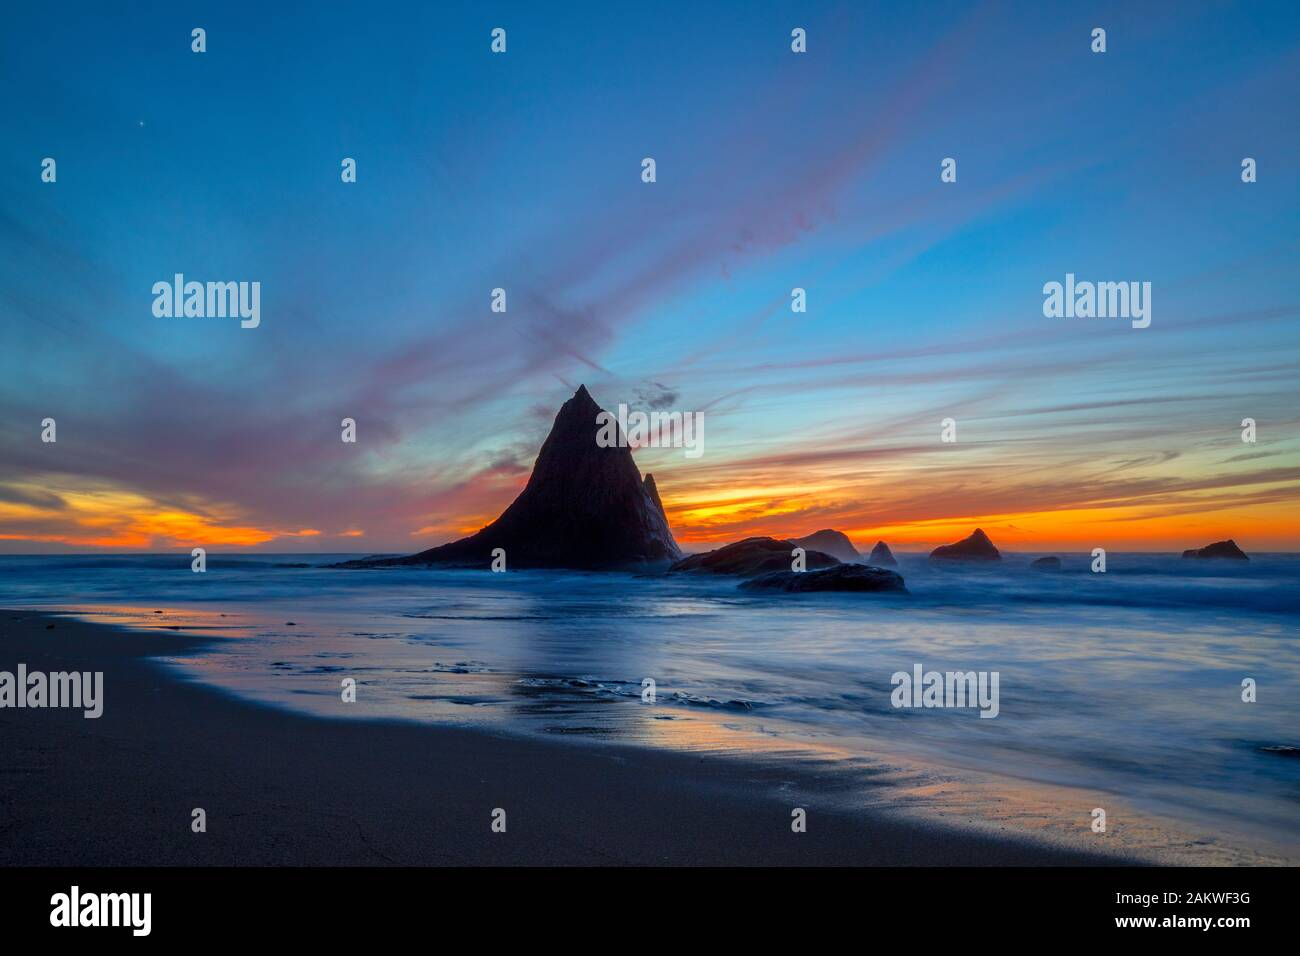 A colorful sunset backdrops the unique rock formations of Shark Fin Rock on Martin's Beach, in Half Moon Bay, California as the waves come in Stock Photo